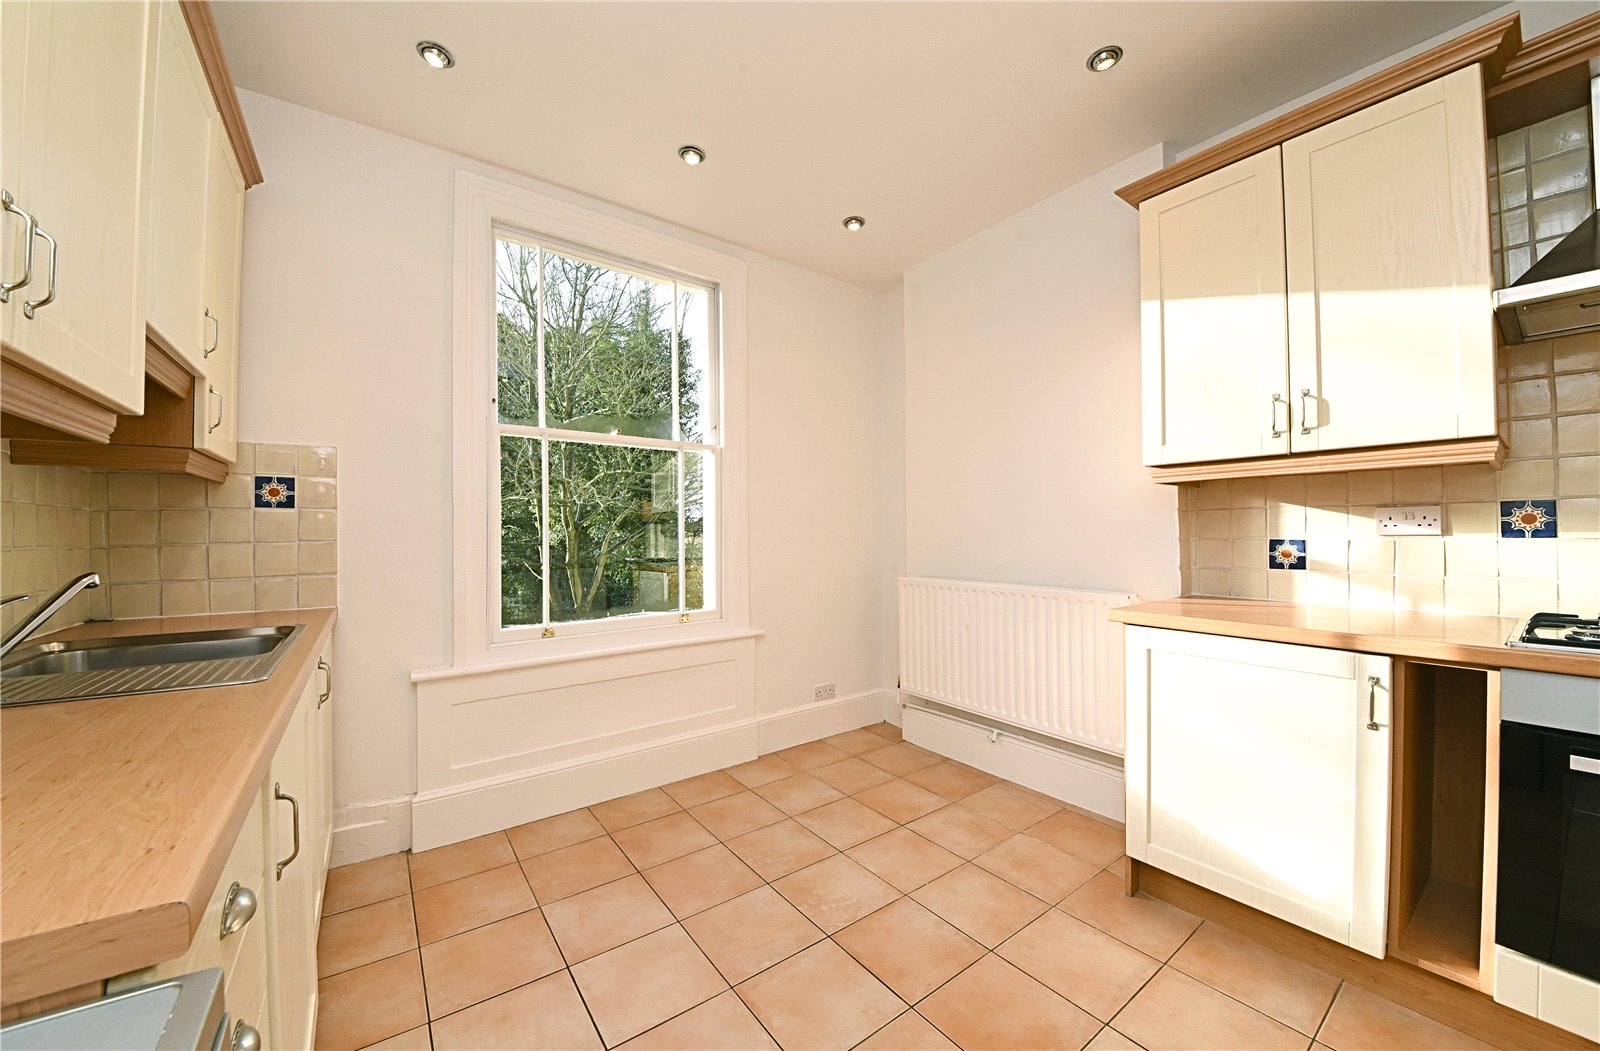 3 bed apartment to rent in Wood Street, High Barnet  - Property Image 3